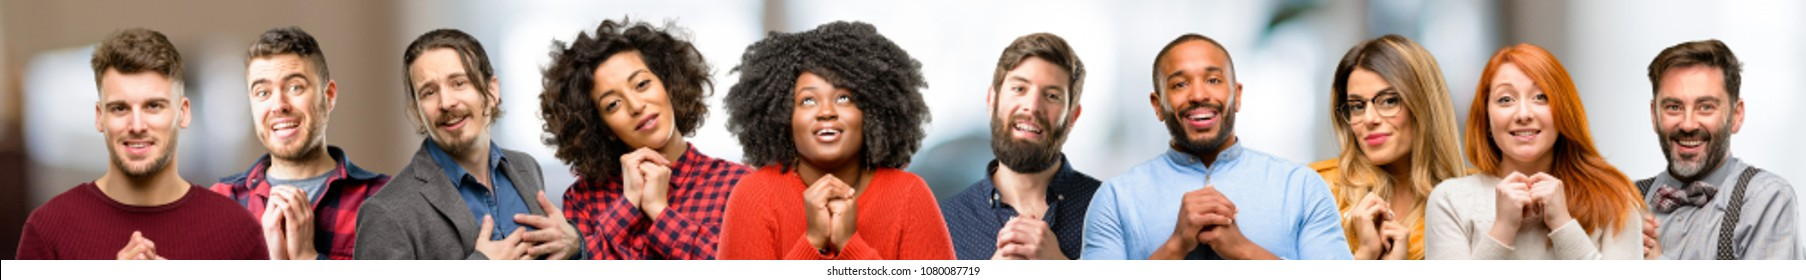 Group of people confident and happy with a big natural smile in love - Shutterstock ID 1080087719